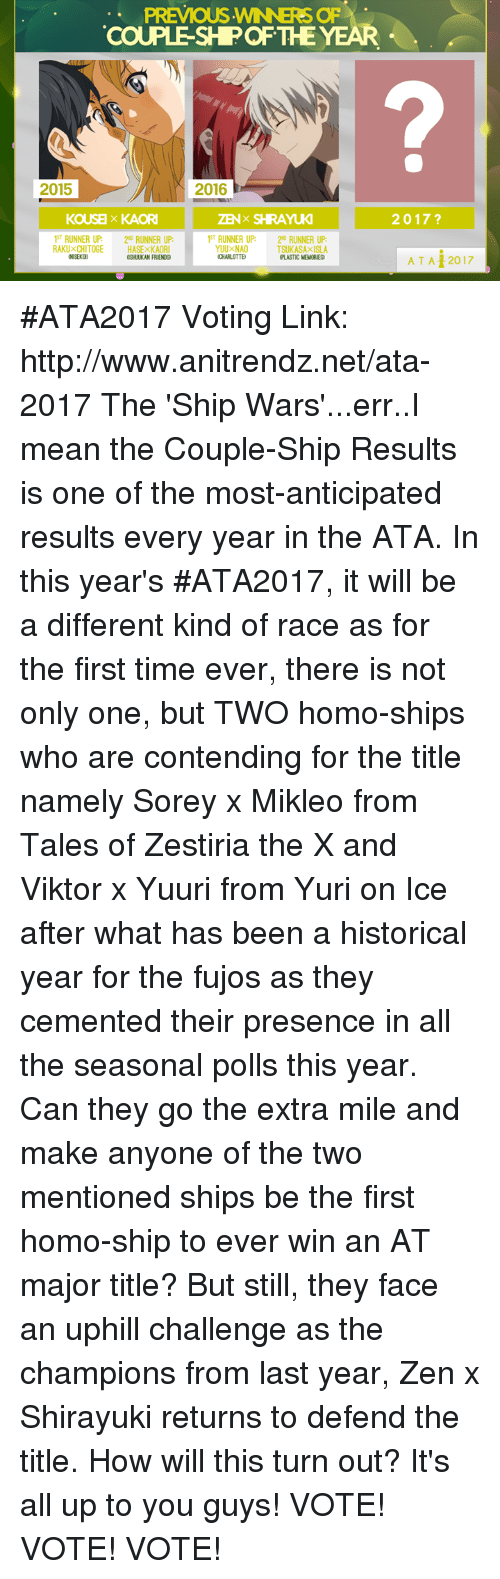 Memes, 🤖, and Tales Of: PREVIOUS WNNERS OF  COUPLE SHPOF THE  YEAR  2015  2016  2017  KOUSE x KAORI  T RUNNER UP RUNNER UP:  T RUNNER UP 20 RUNNER UP  RAKU XCHITOGE HASExKAORI  TSUKASAXISLA  ICHARLOTTE  AT A 12017 #ATA2017 Voting Link: http://www.anitrendz.net/ata-2017  The 'Ship Wars'...err..I mean the Couple-Ship Results is one of the most-anticipated results every year in the ATA.  In this year's #ATA2017, it will be a different kind of race as for the first time ever, there is not only one, but TWO homo-ships who are contending for the title namely Sorey x Mikleo from Tales of Zestiria the X and Viktor x Yuuri from Yuri on Ice after what has been a historical year for the fujos as they cemented their presence in all the seasonal polls this year. Can they go the extra mile and make anyone of the two mentioned ships be the first homo-ship to ever win an AT major title?  But still, they face an uphill challenge as the champions from last year, Zen x Shirayuki returns to defend the title.  How will this turn out? It's all up to you guys!  VOTE! VOTE! VOTE!